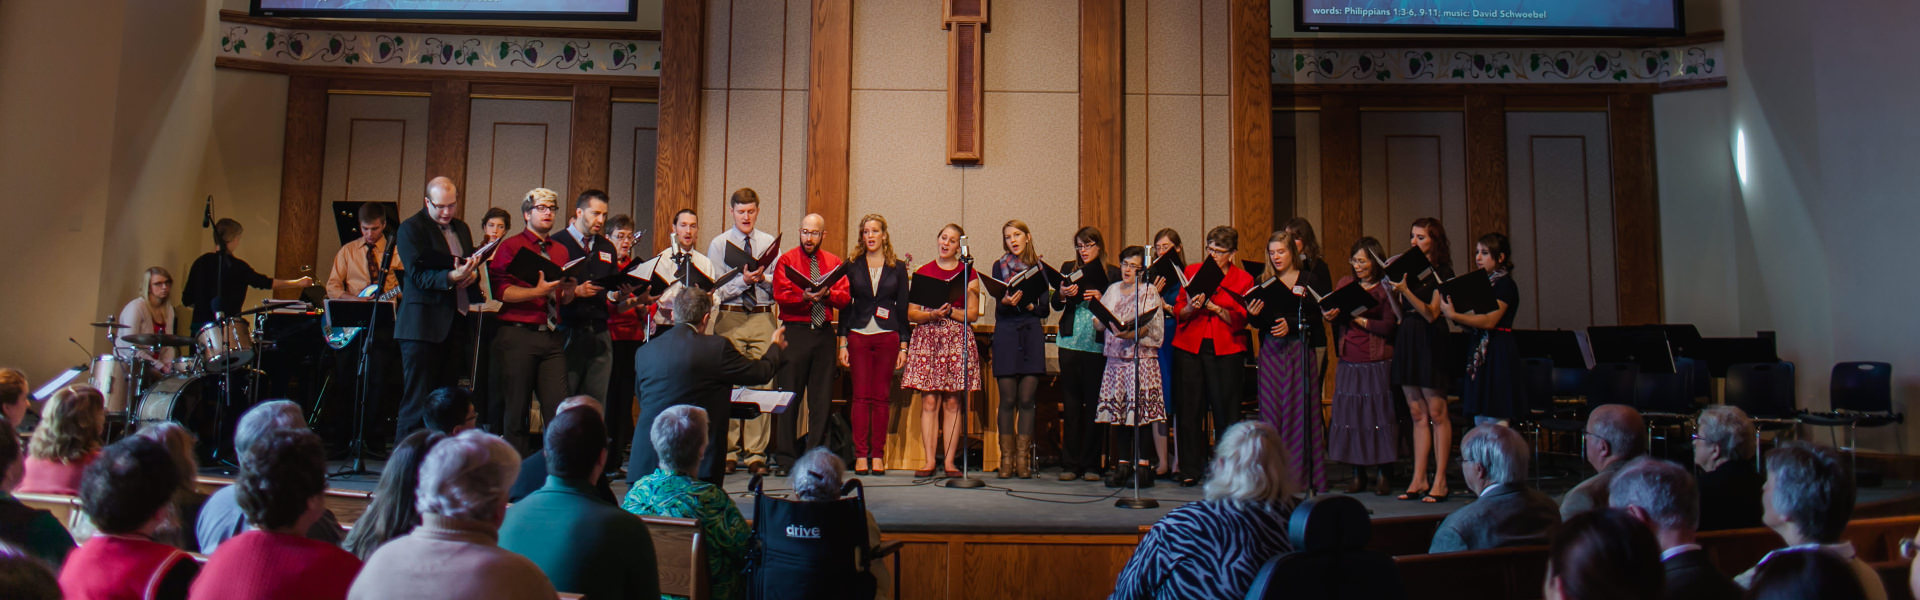 The Chapel choir sings during worship